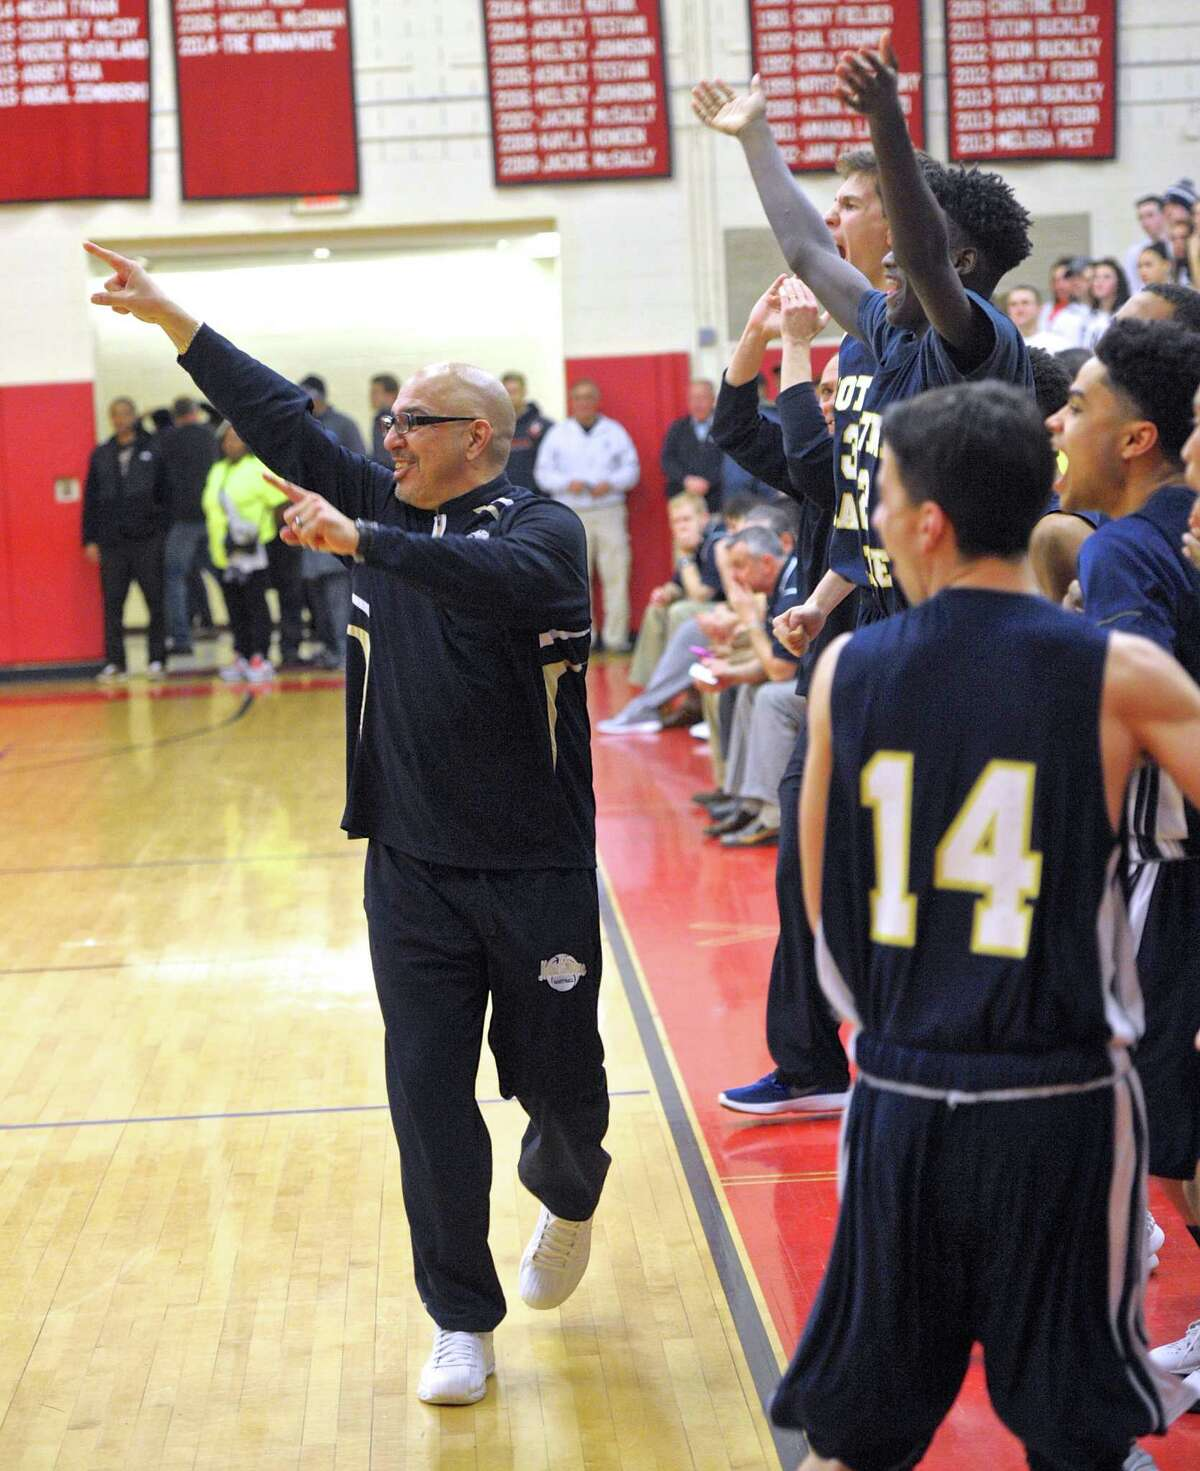 Coach Vin Laczkoski, back following a four-game suspension, begins the celebration on the Notre Dame-Fairfield be nch in the closing seconds of the Lancers' 76-64 win over Immaculate in the SWC final Thursday night at Masuk.